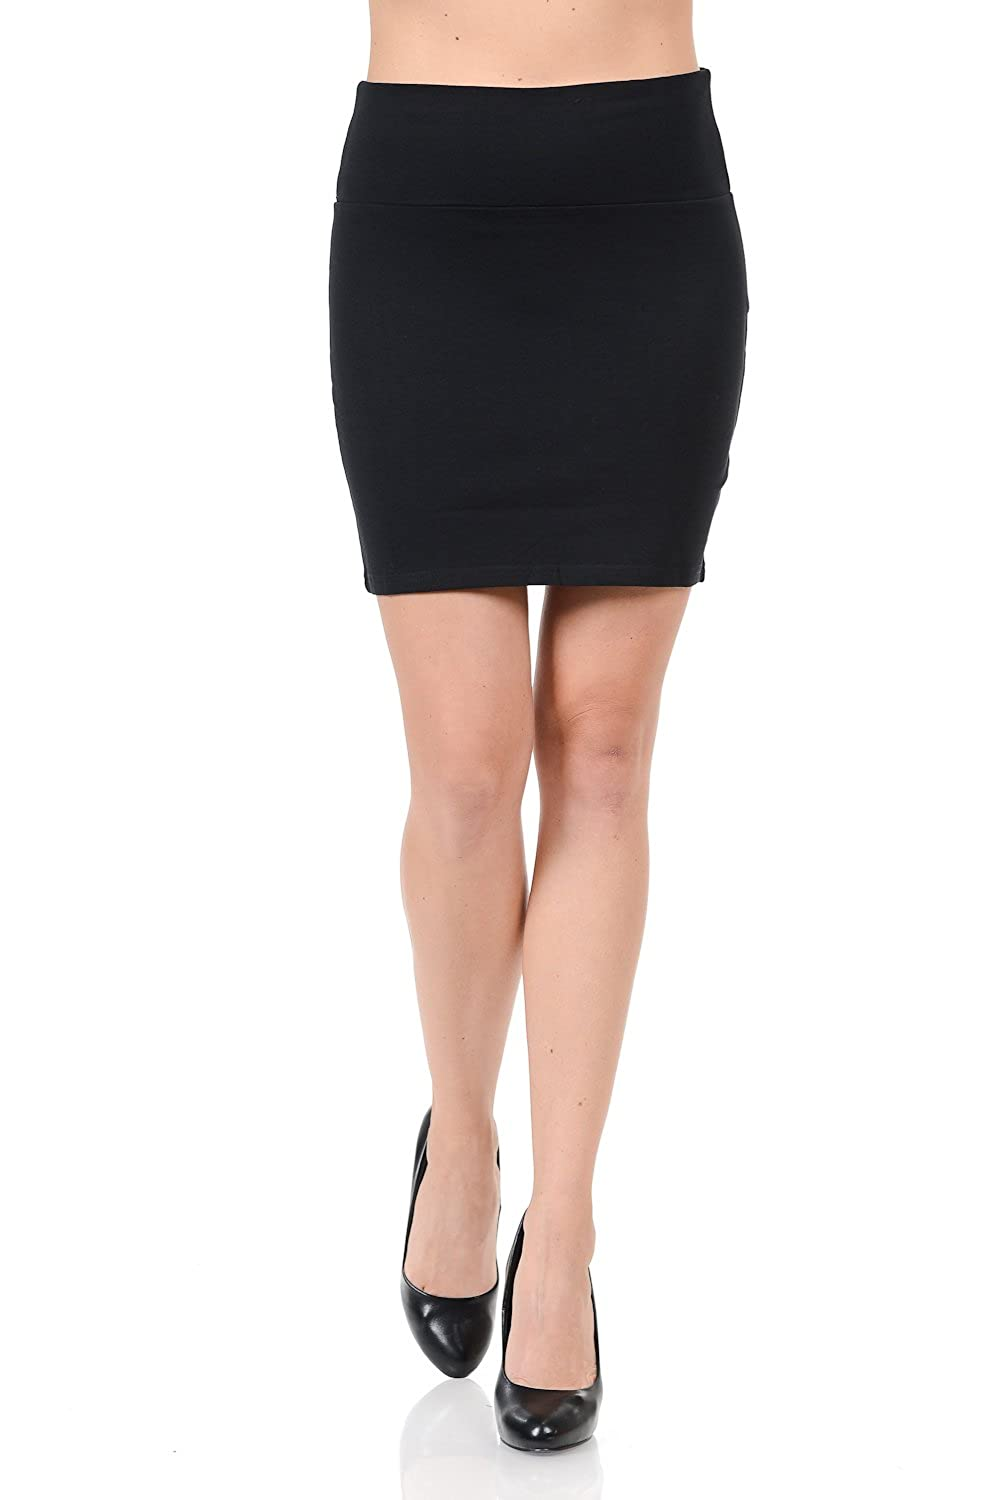 a74551b7a341 Maryclan Women's Solid High Waist Stretch Cotton Span Mini Skirt (One Size,  Black) at Amazon Women's Clothing store: